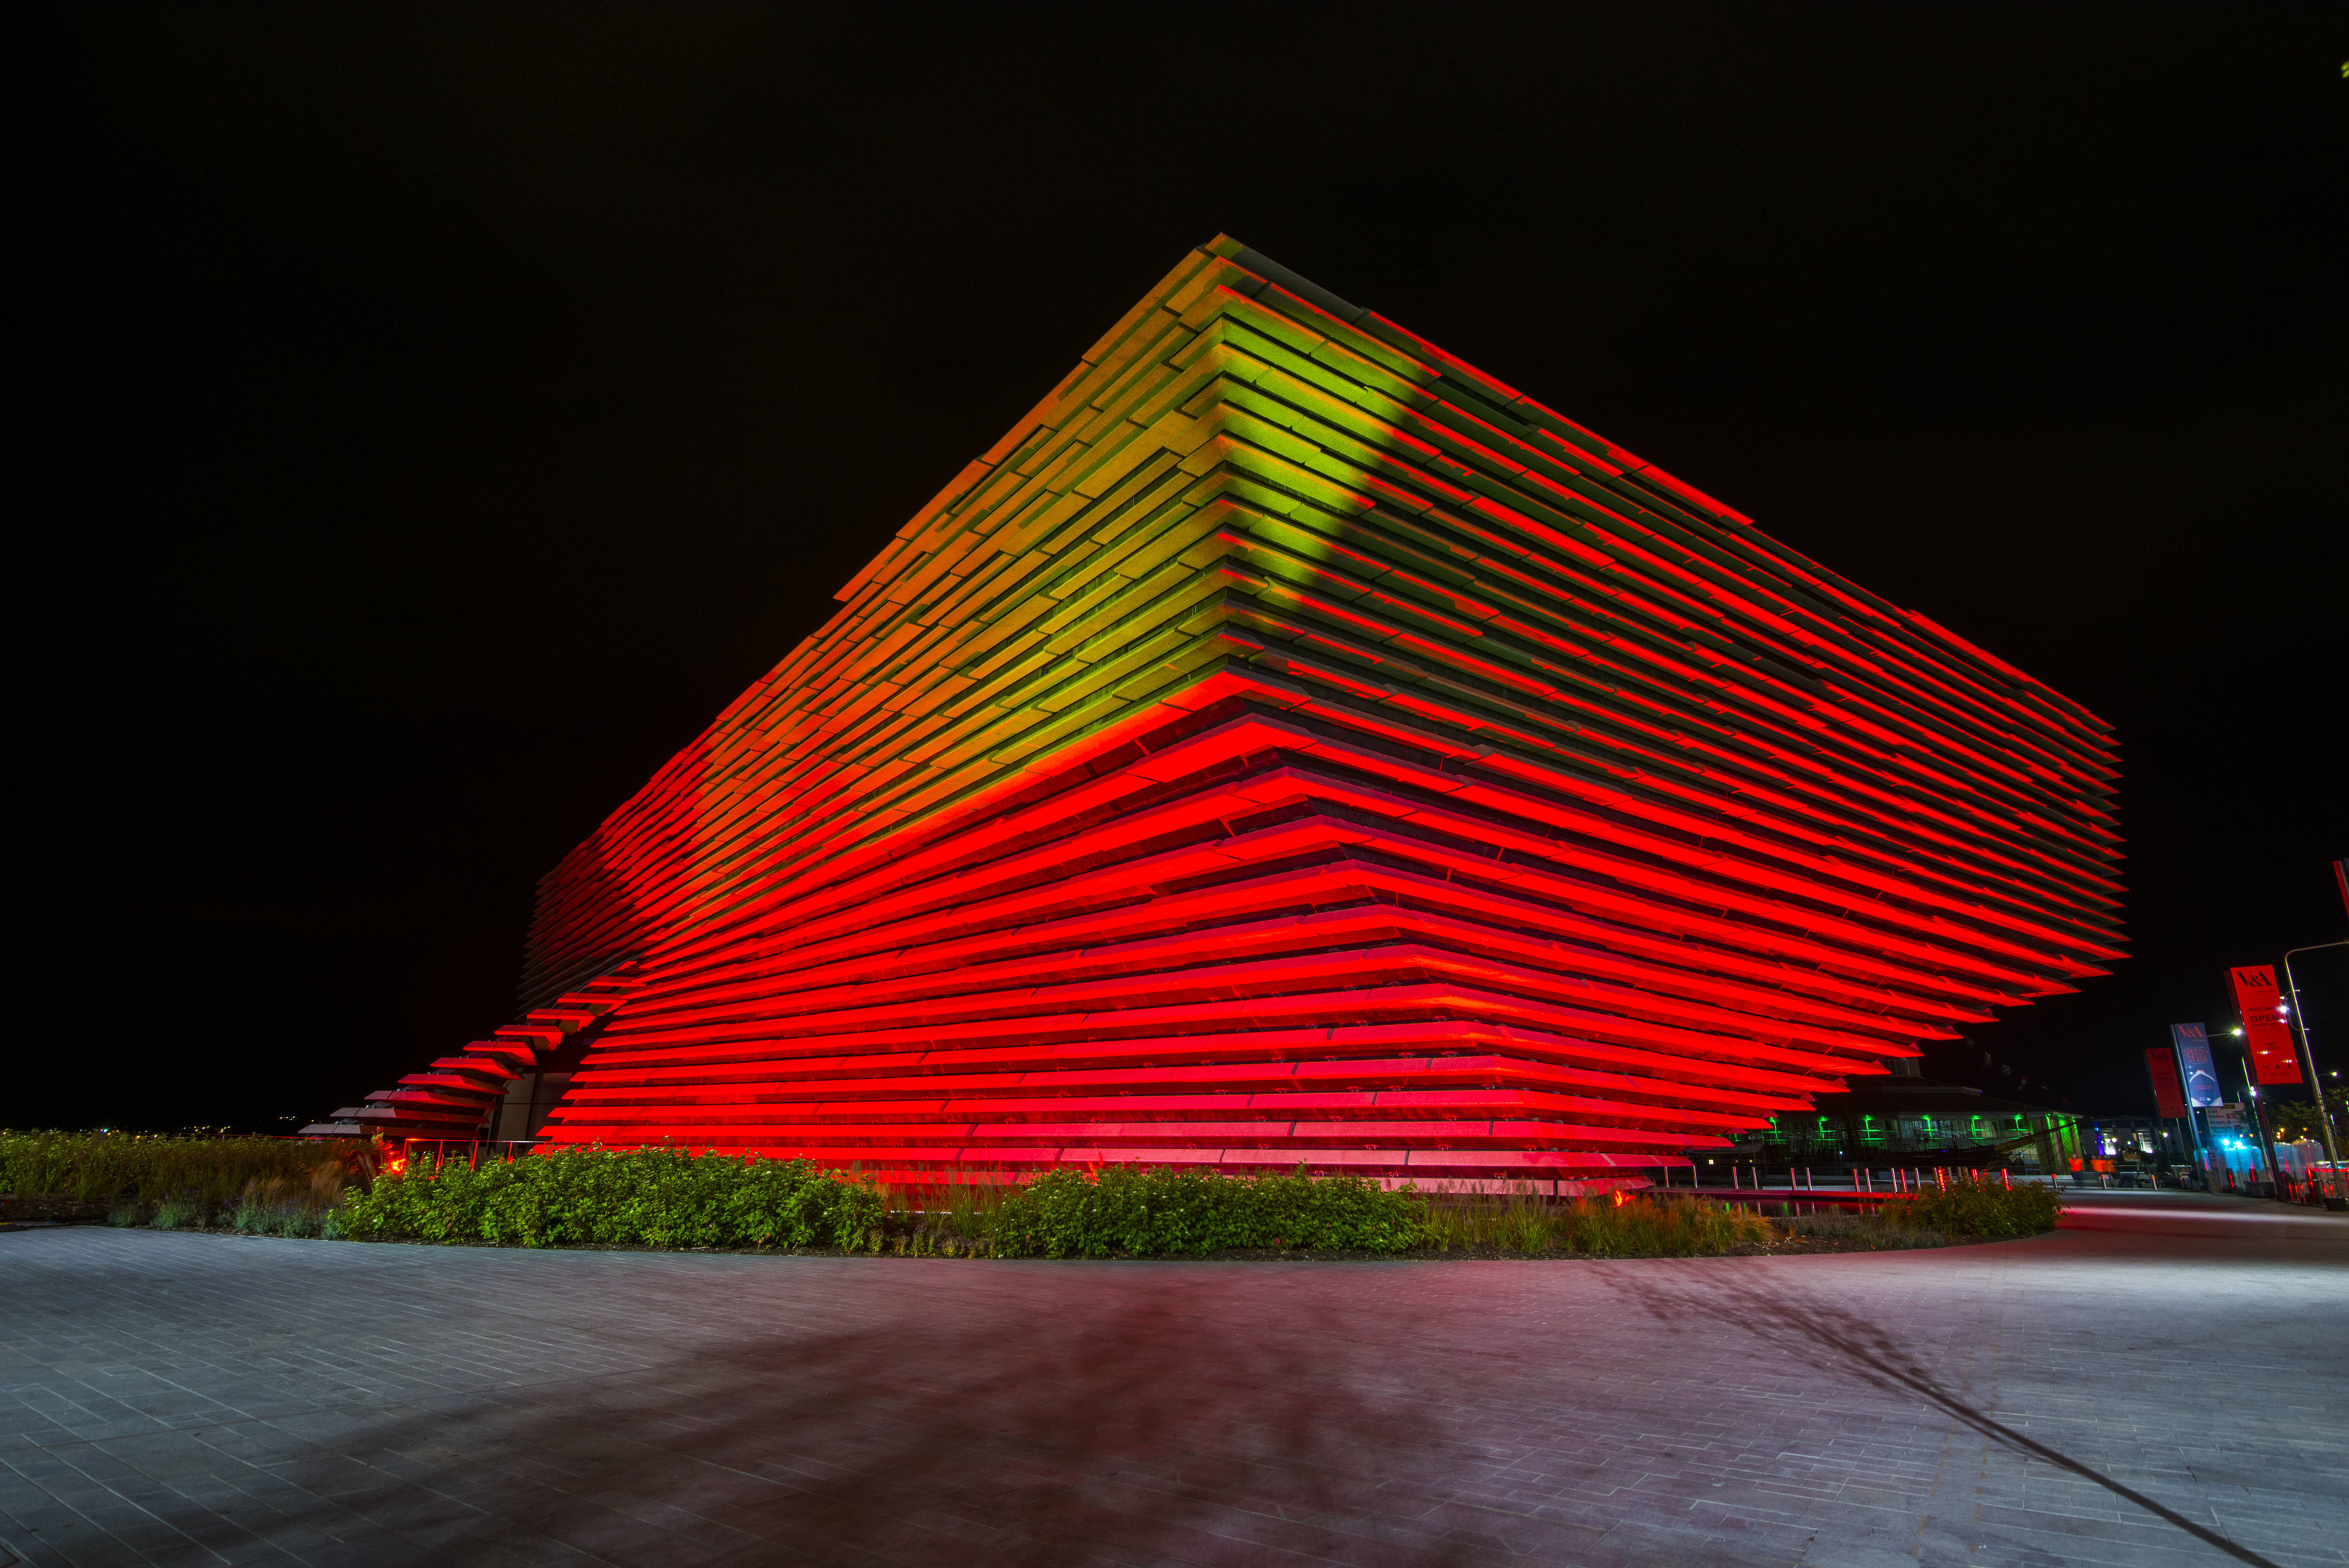 The V&A Dundee lit up in a test ahead of Friday night's light show.